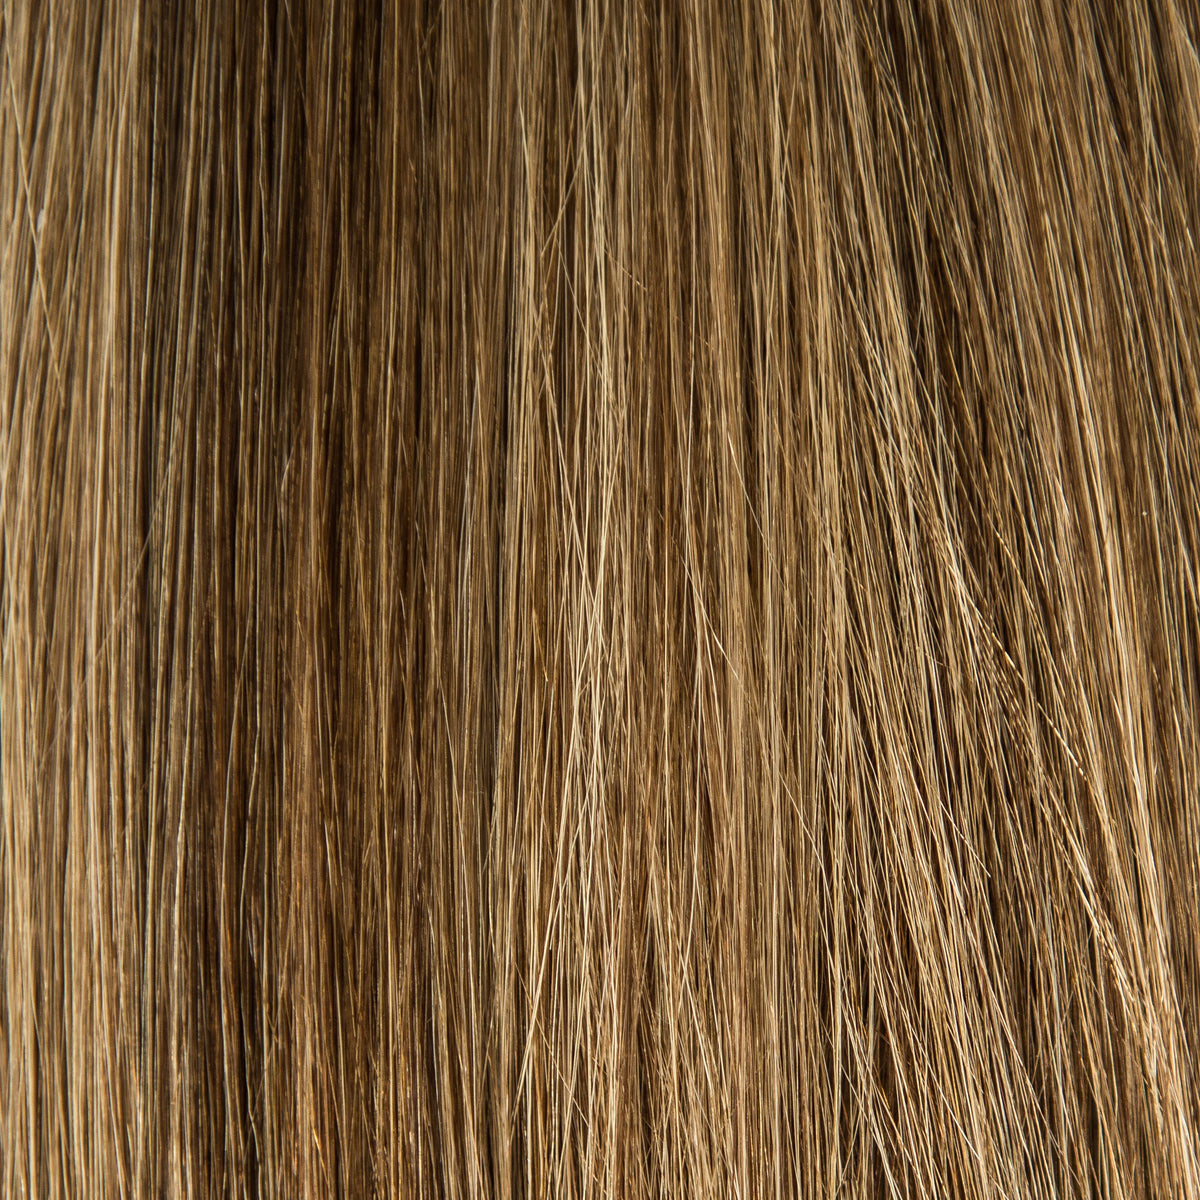 Laced Hair Machine Sewn Weft Extensions Dimensional #4/8 (Cappuccino)